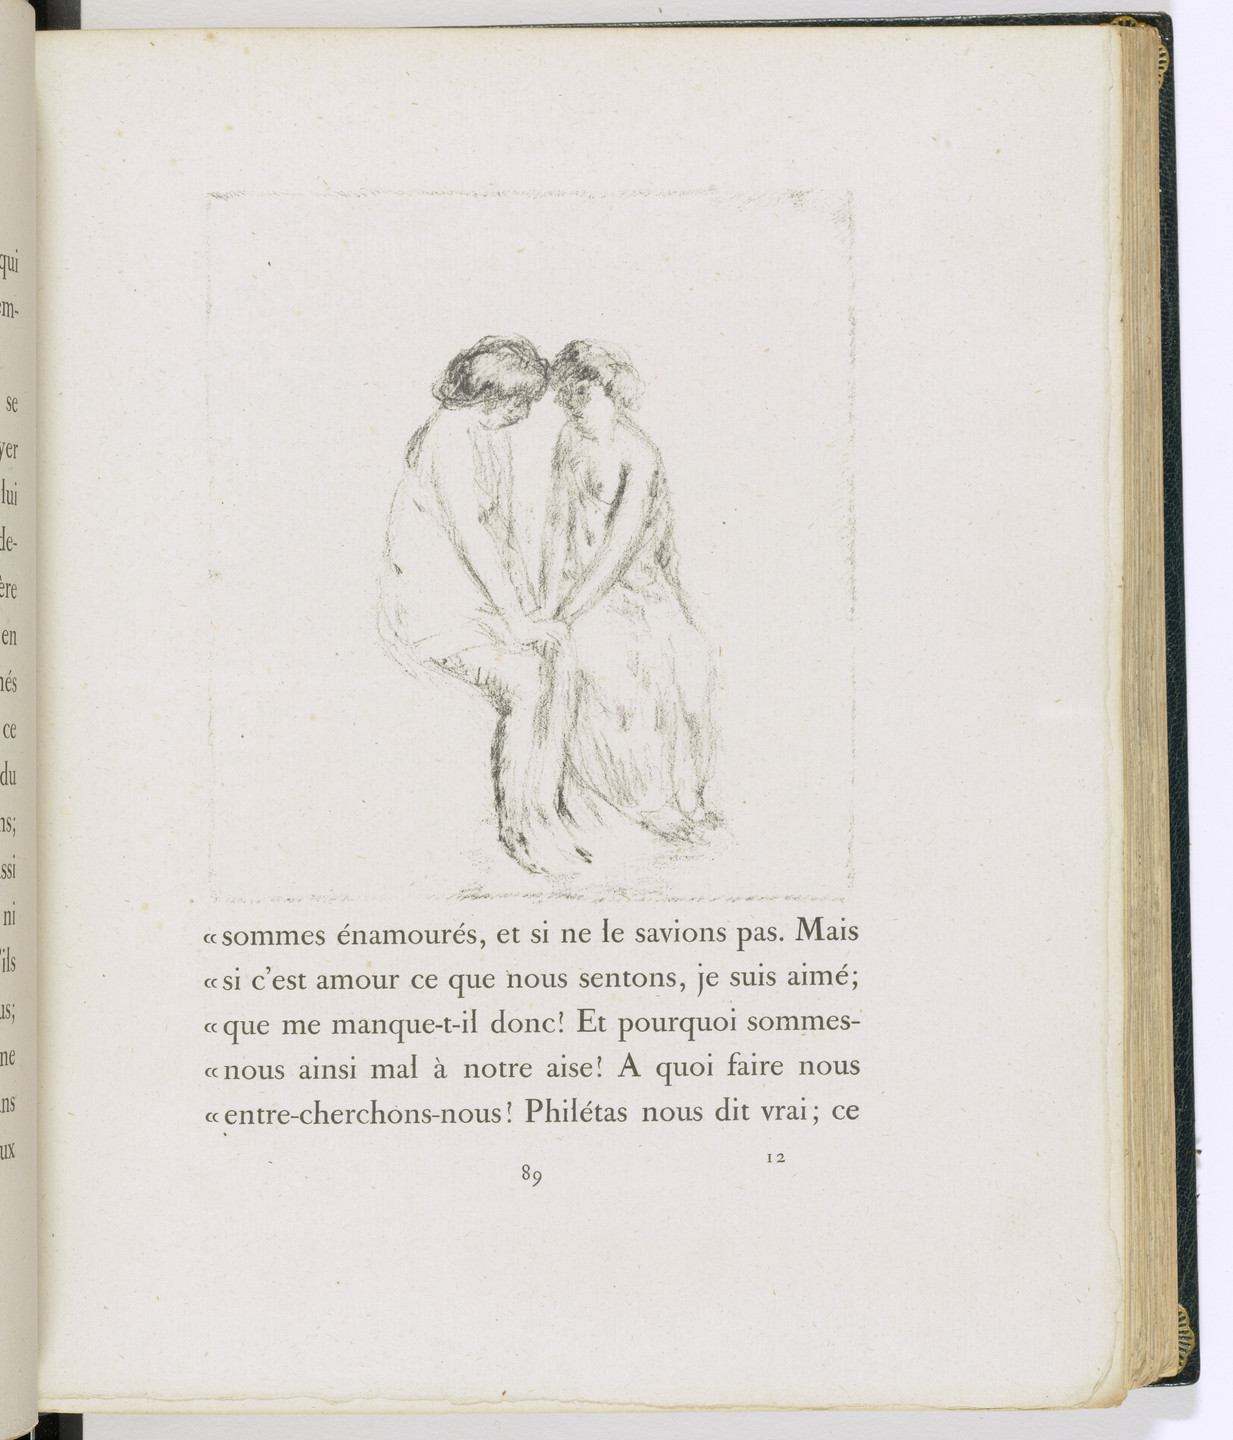 Pierre Bonnard. In-text plate (page 89) from Daphnis et Chloé. 1902